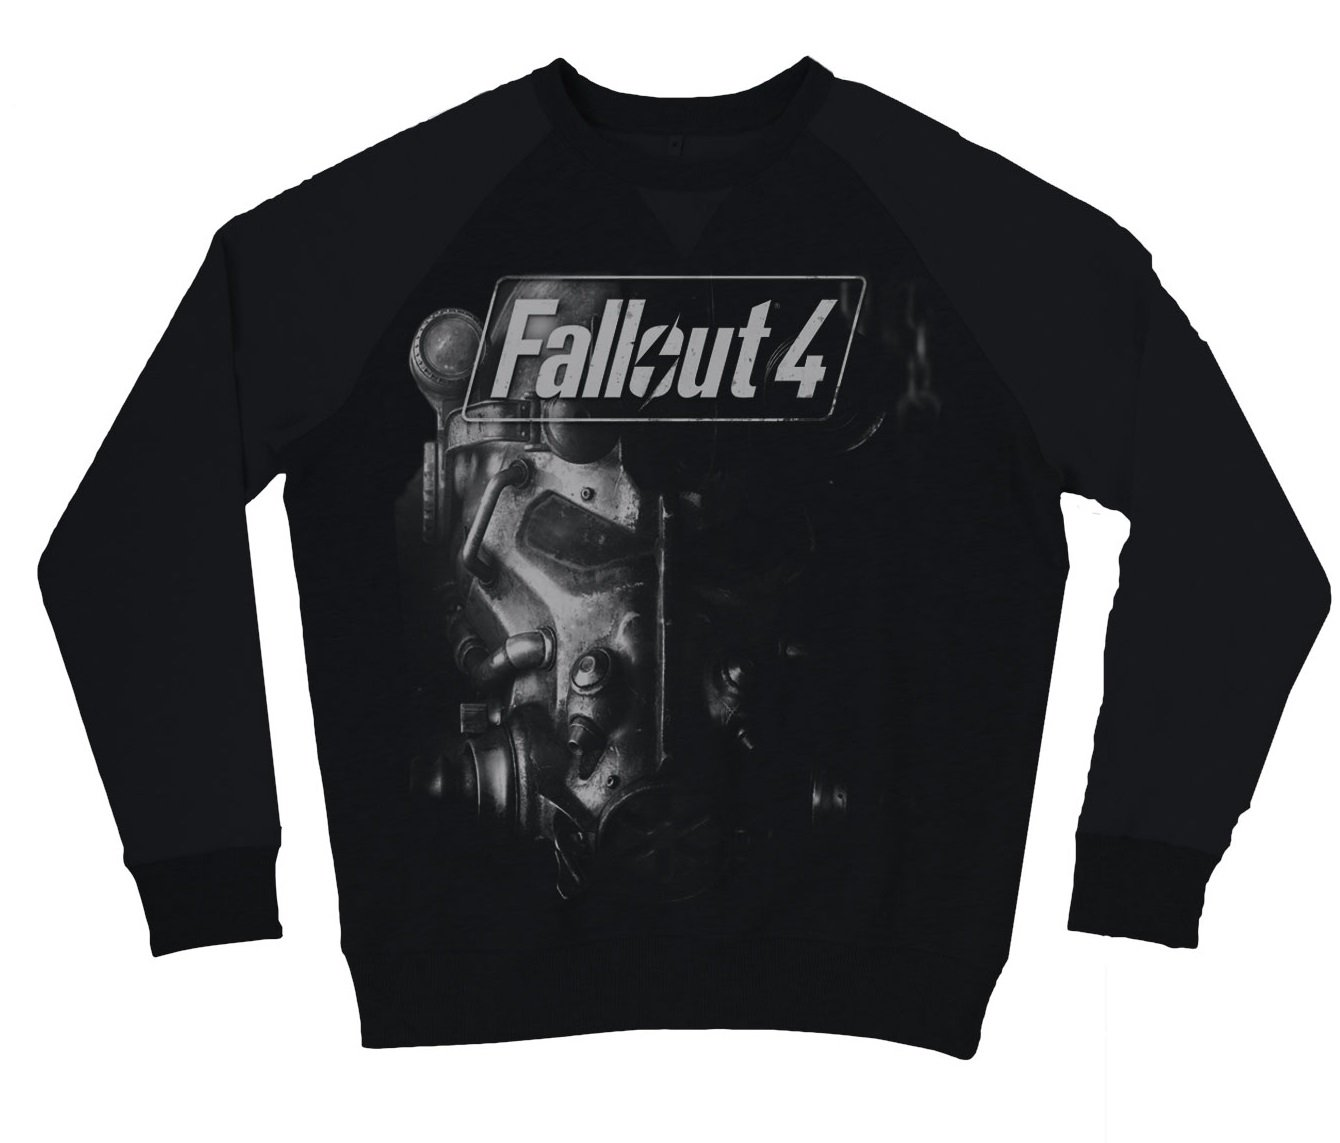 Fallout 4 - Brotherhood Of Steel Jersey Negro M New